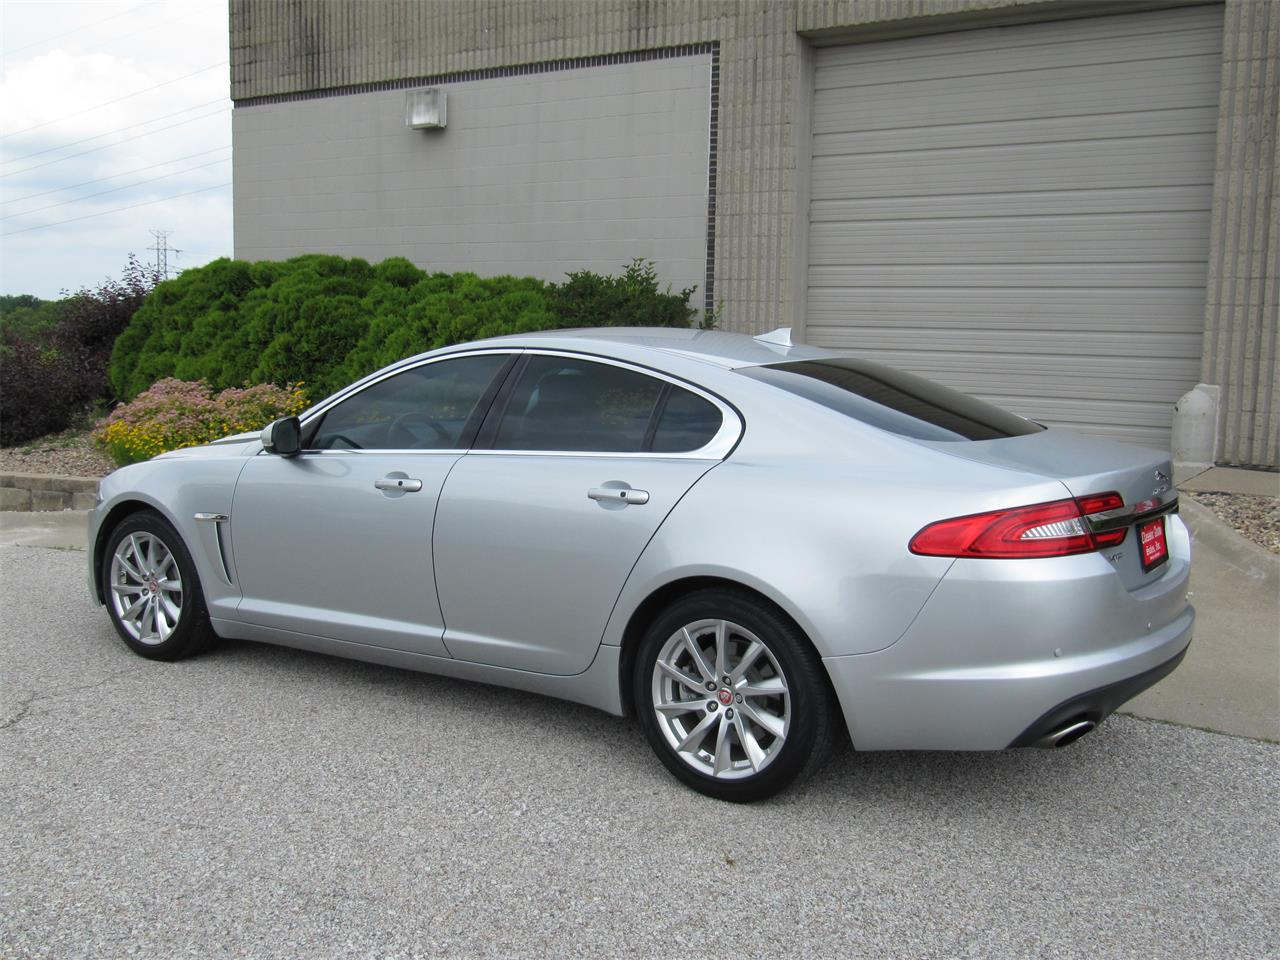 Large Picture of '15 Jaguar XF - $23,900.00 Offered by Classic Auto Sales - QD33